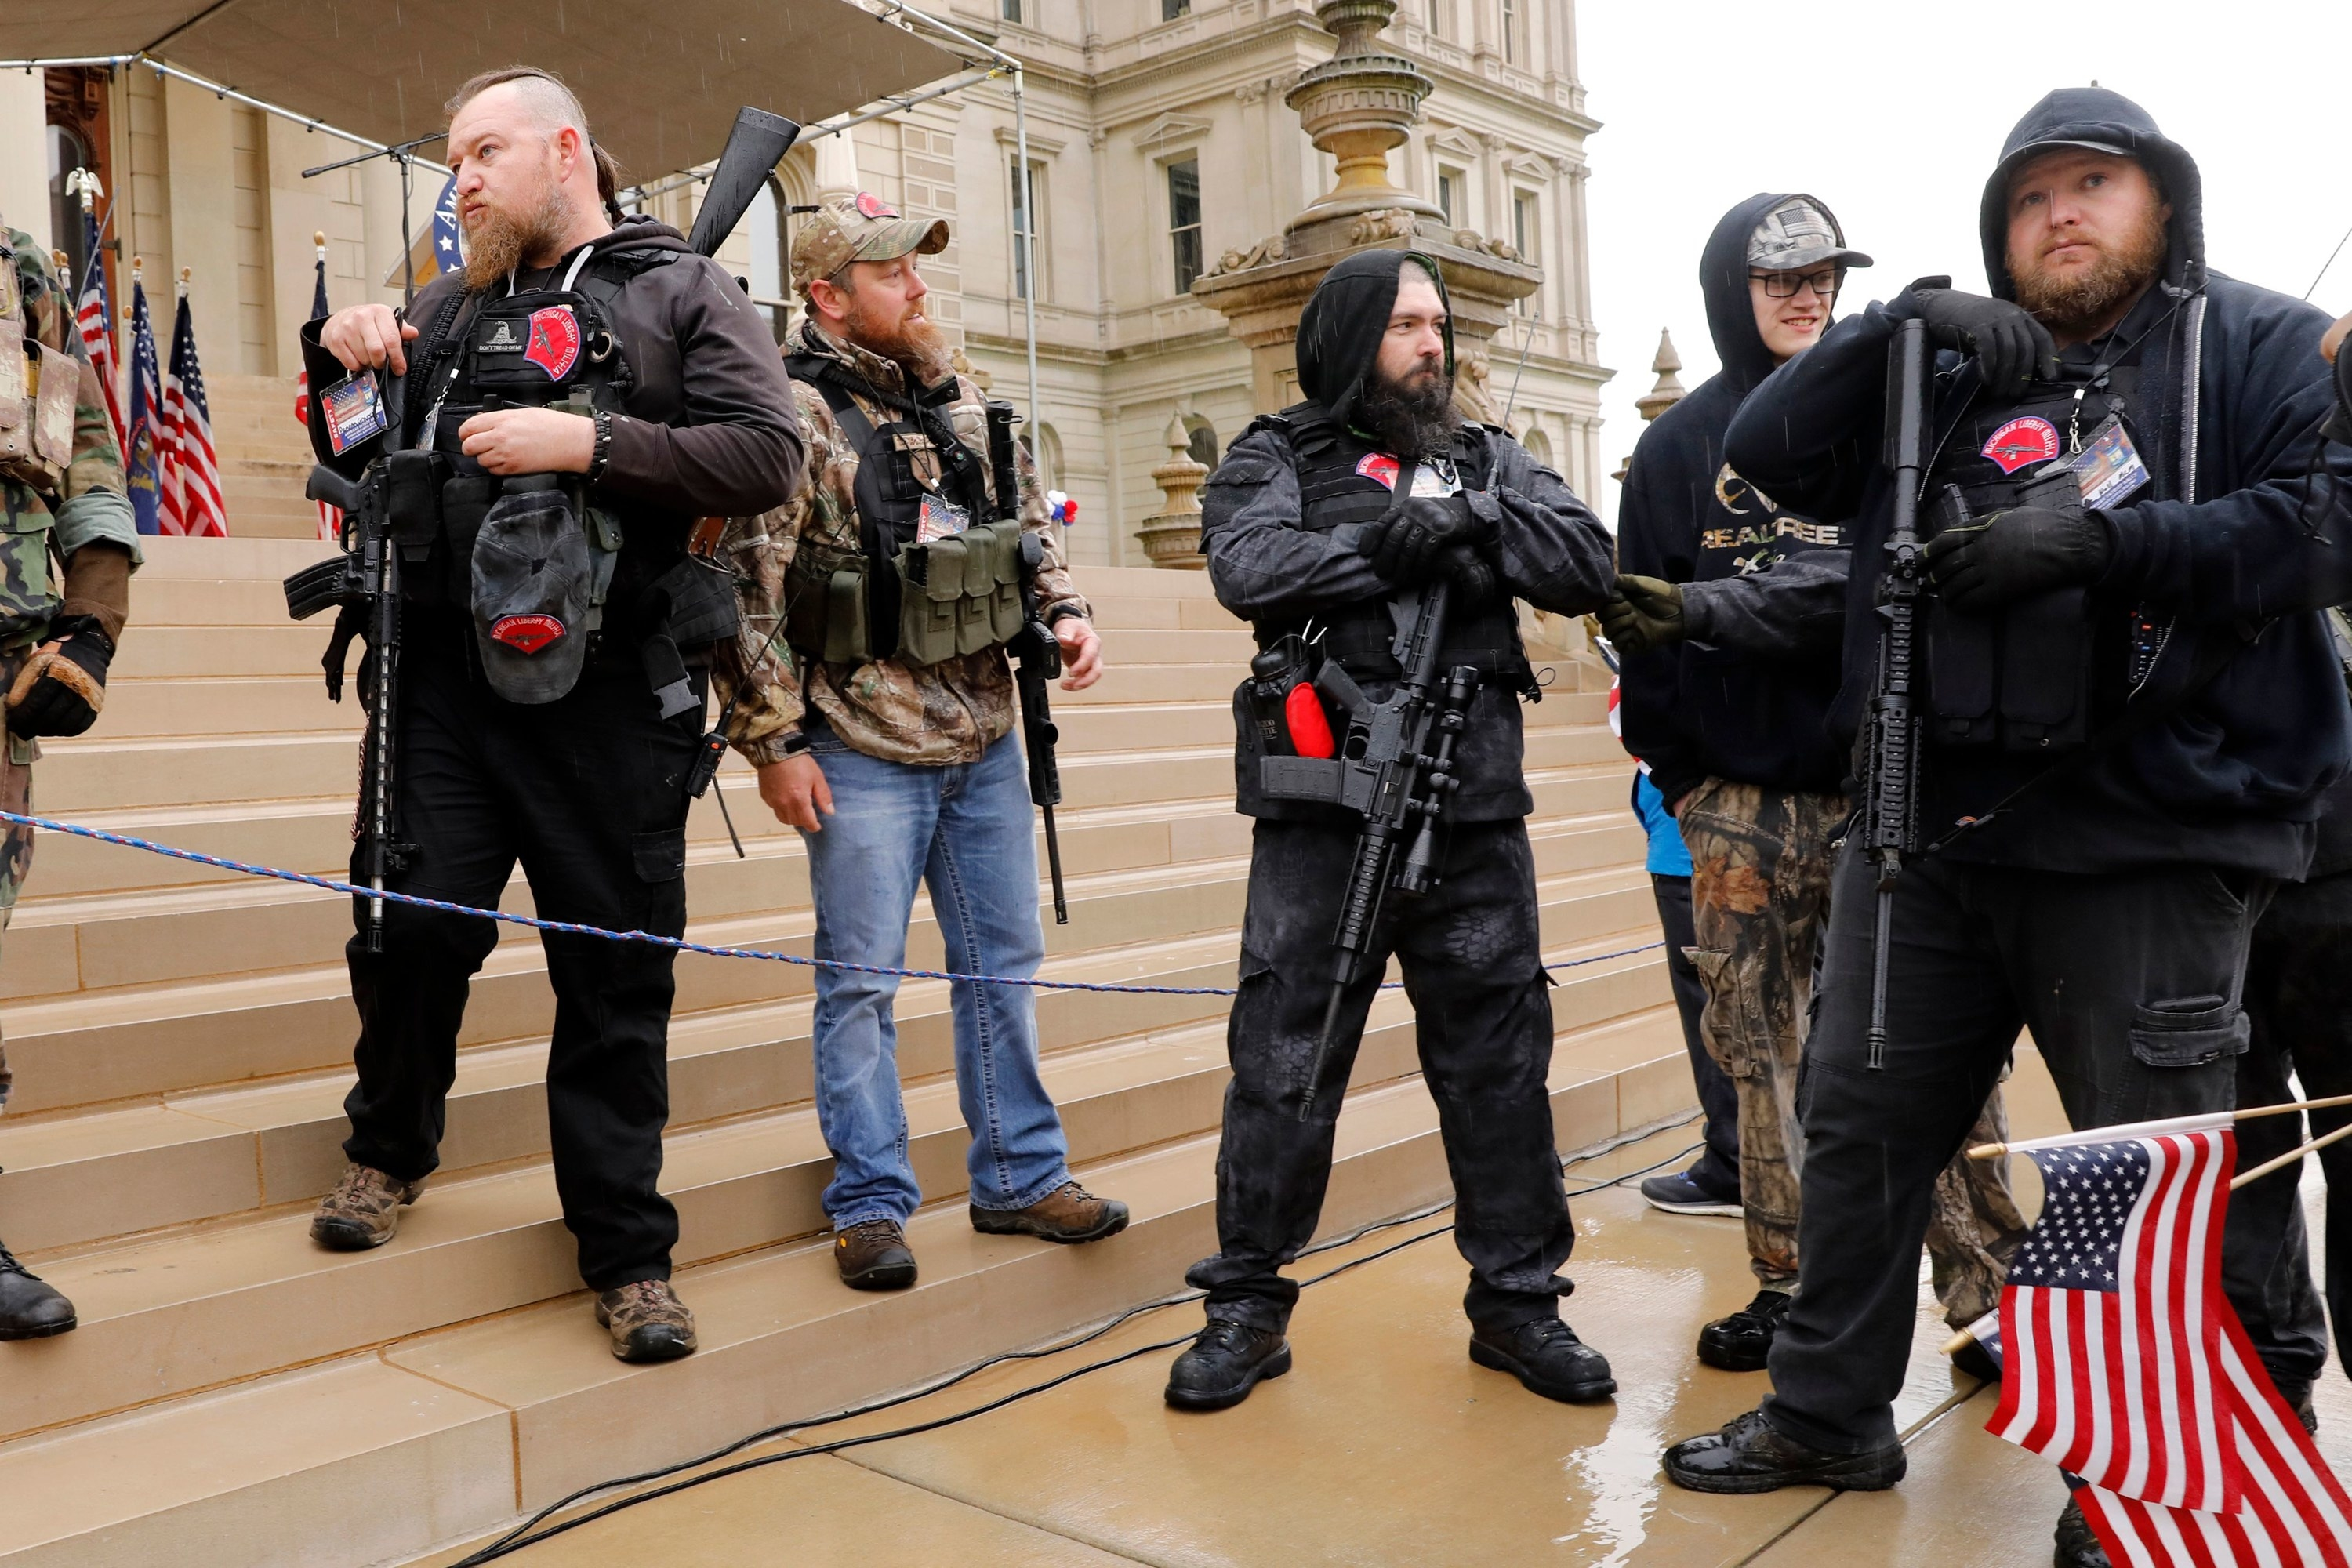 White men armed with large guns stand on the steps outside the state capitol building